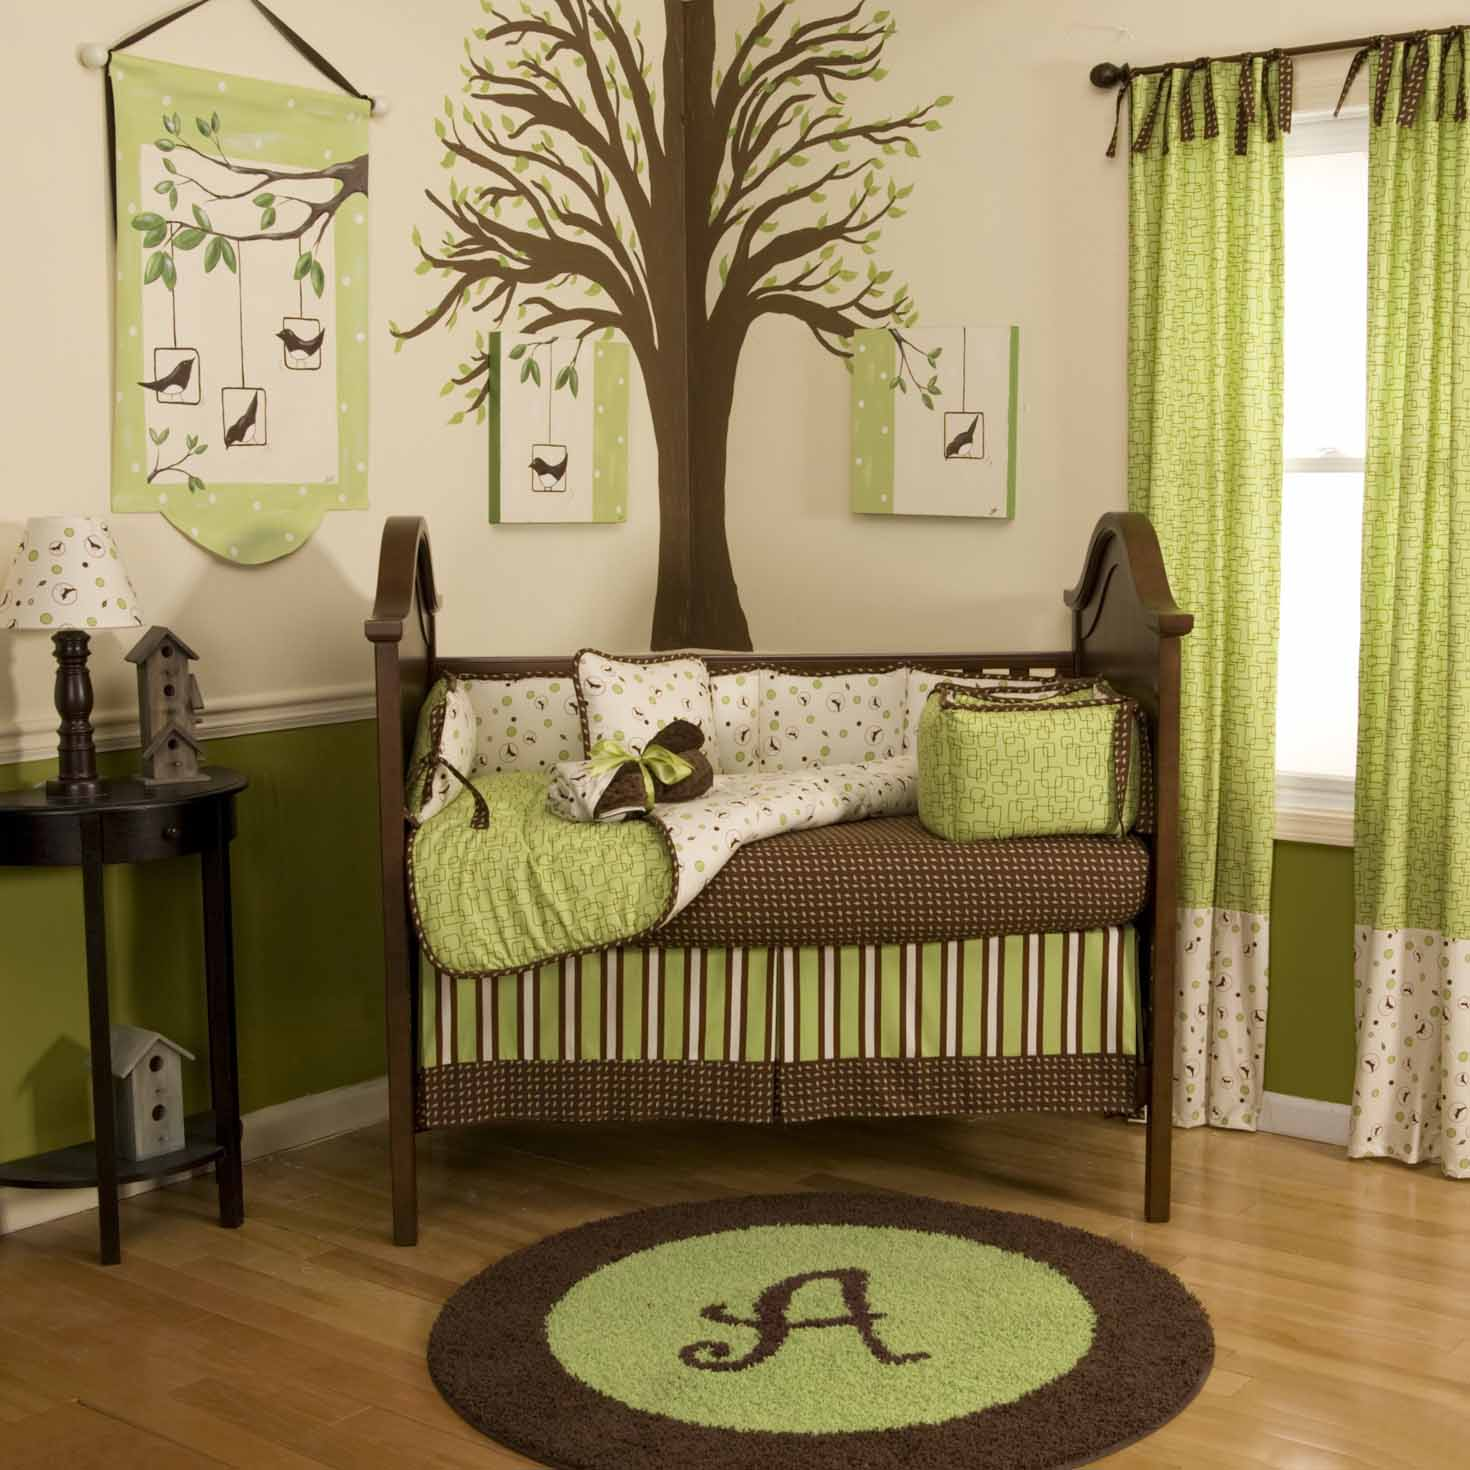 Green baby boy room decor - 17 Best Images About Kids Rooms On Pinterest Green Bedding Teenager Rooms And Nurseries